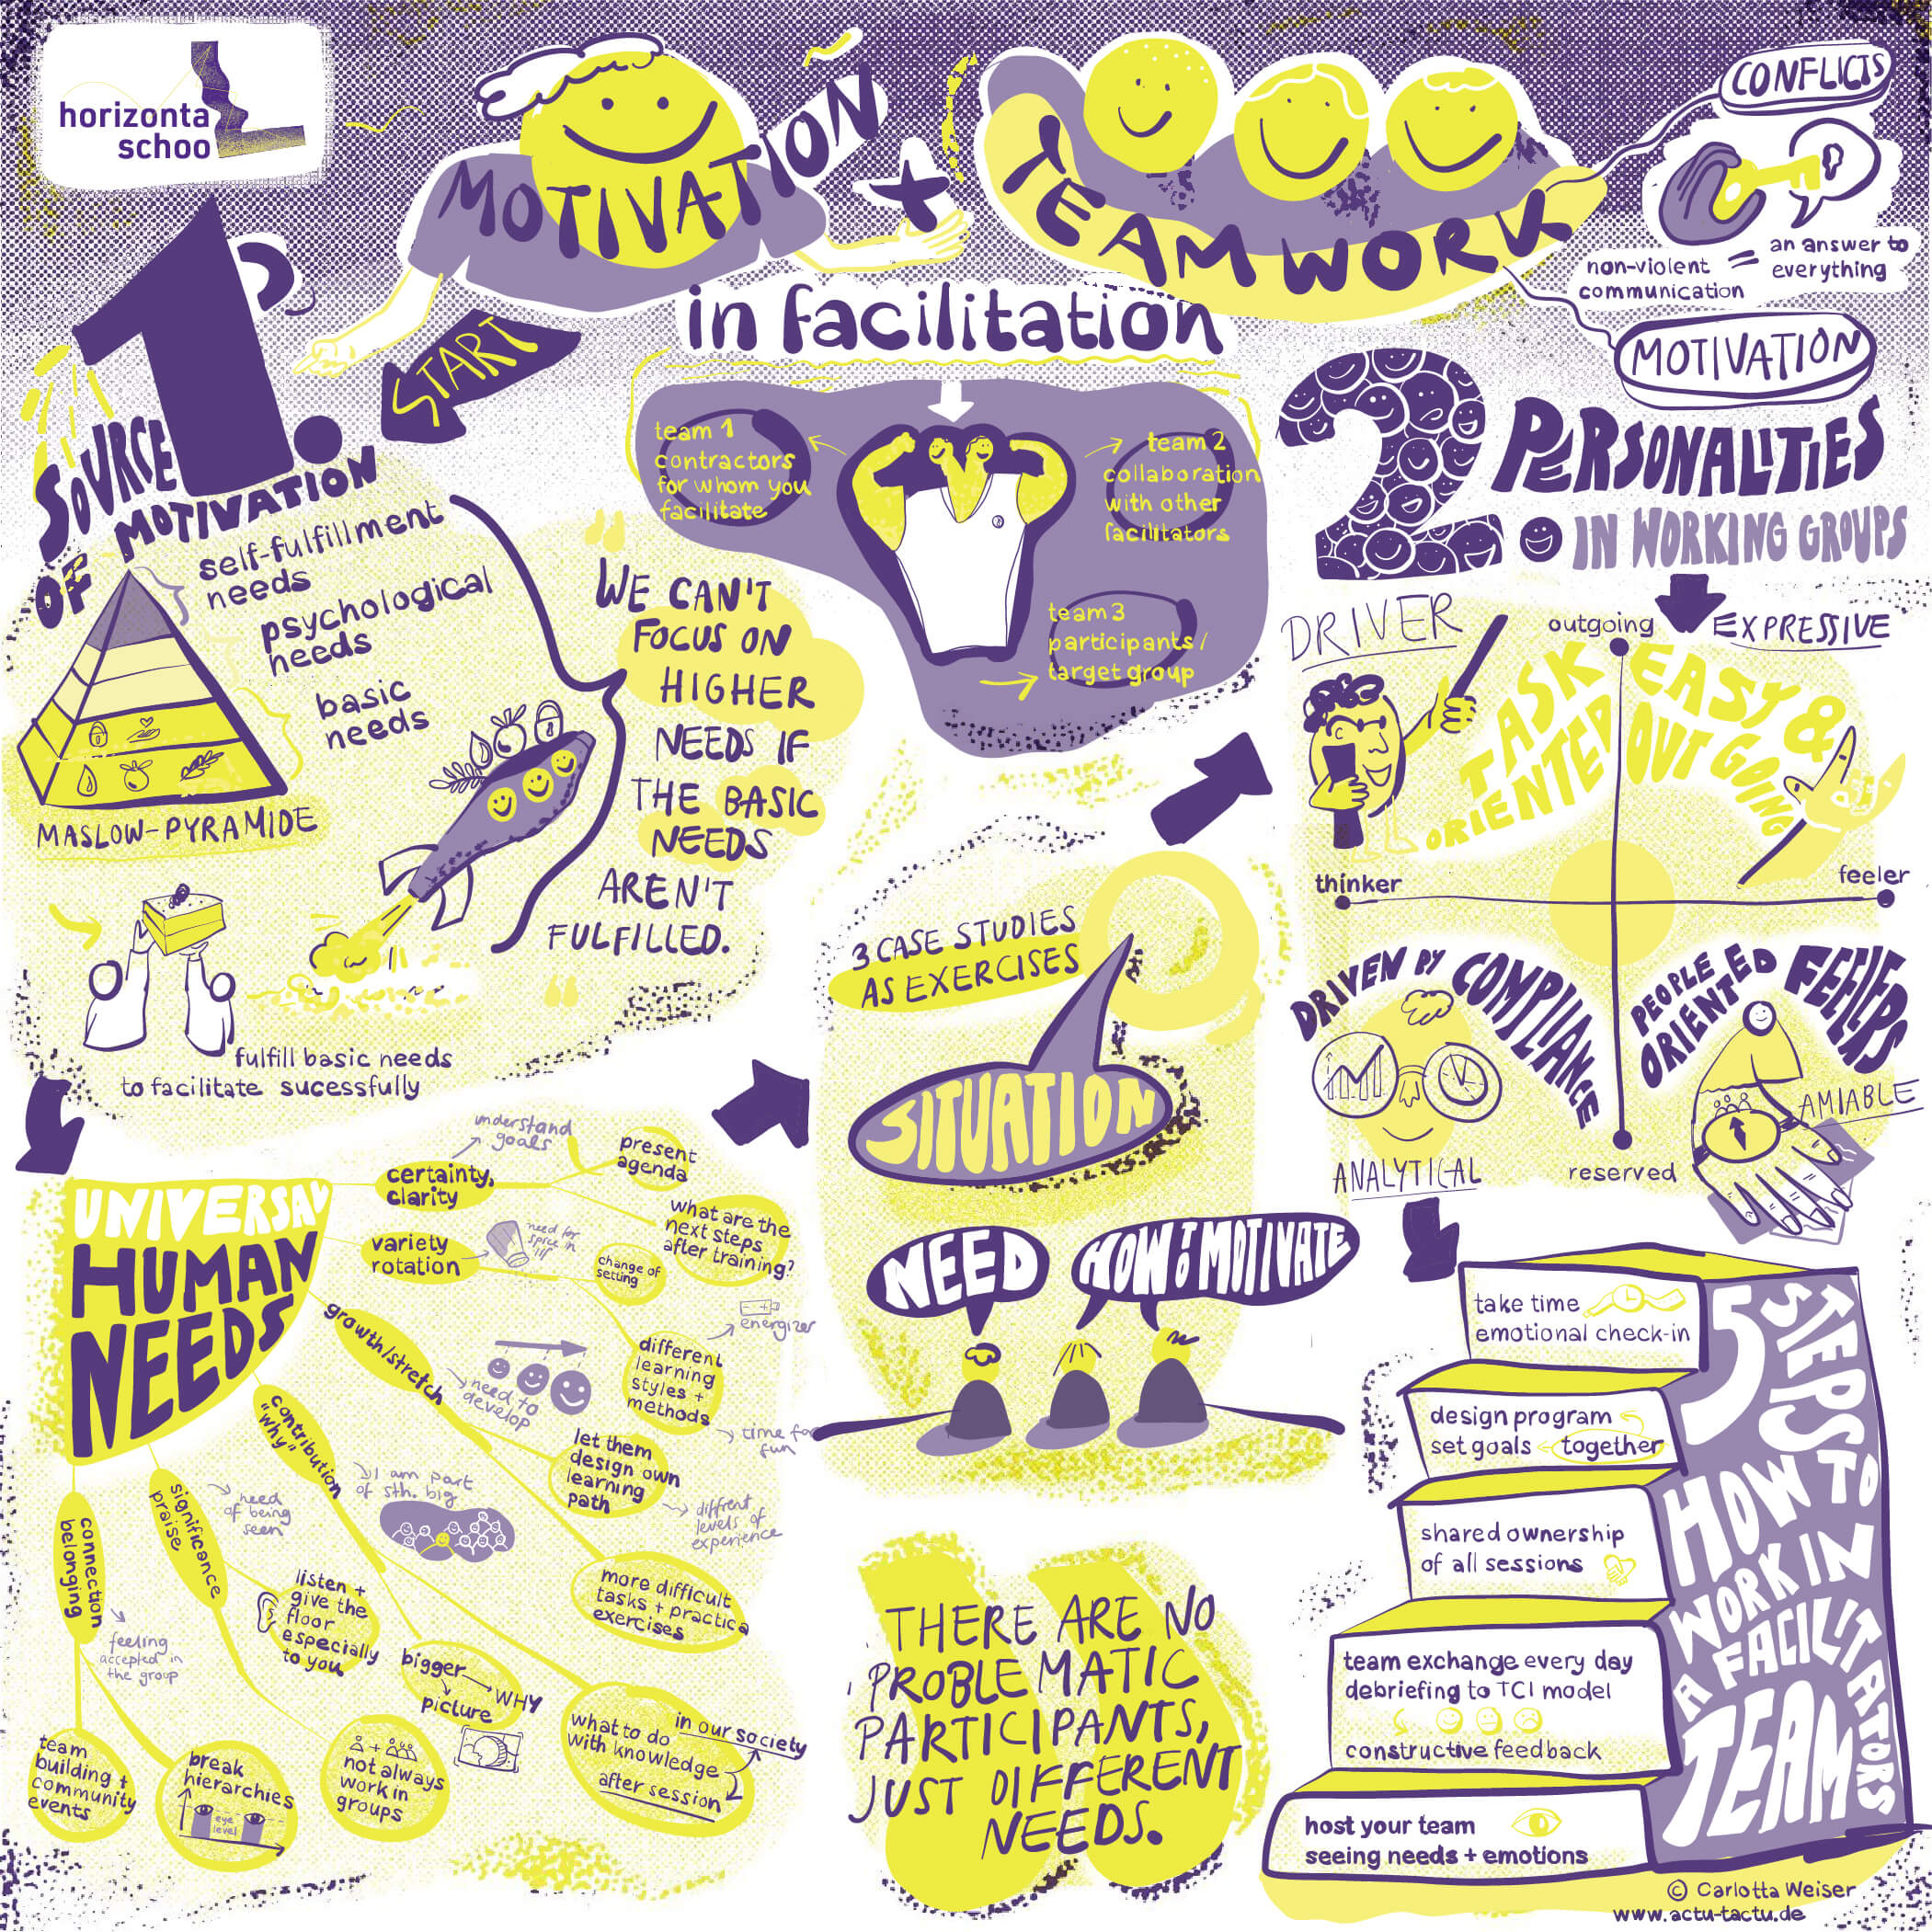 Graphic Recording of a workshop event from horizontal school about motivation and teamwork.